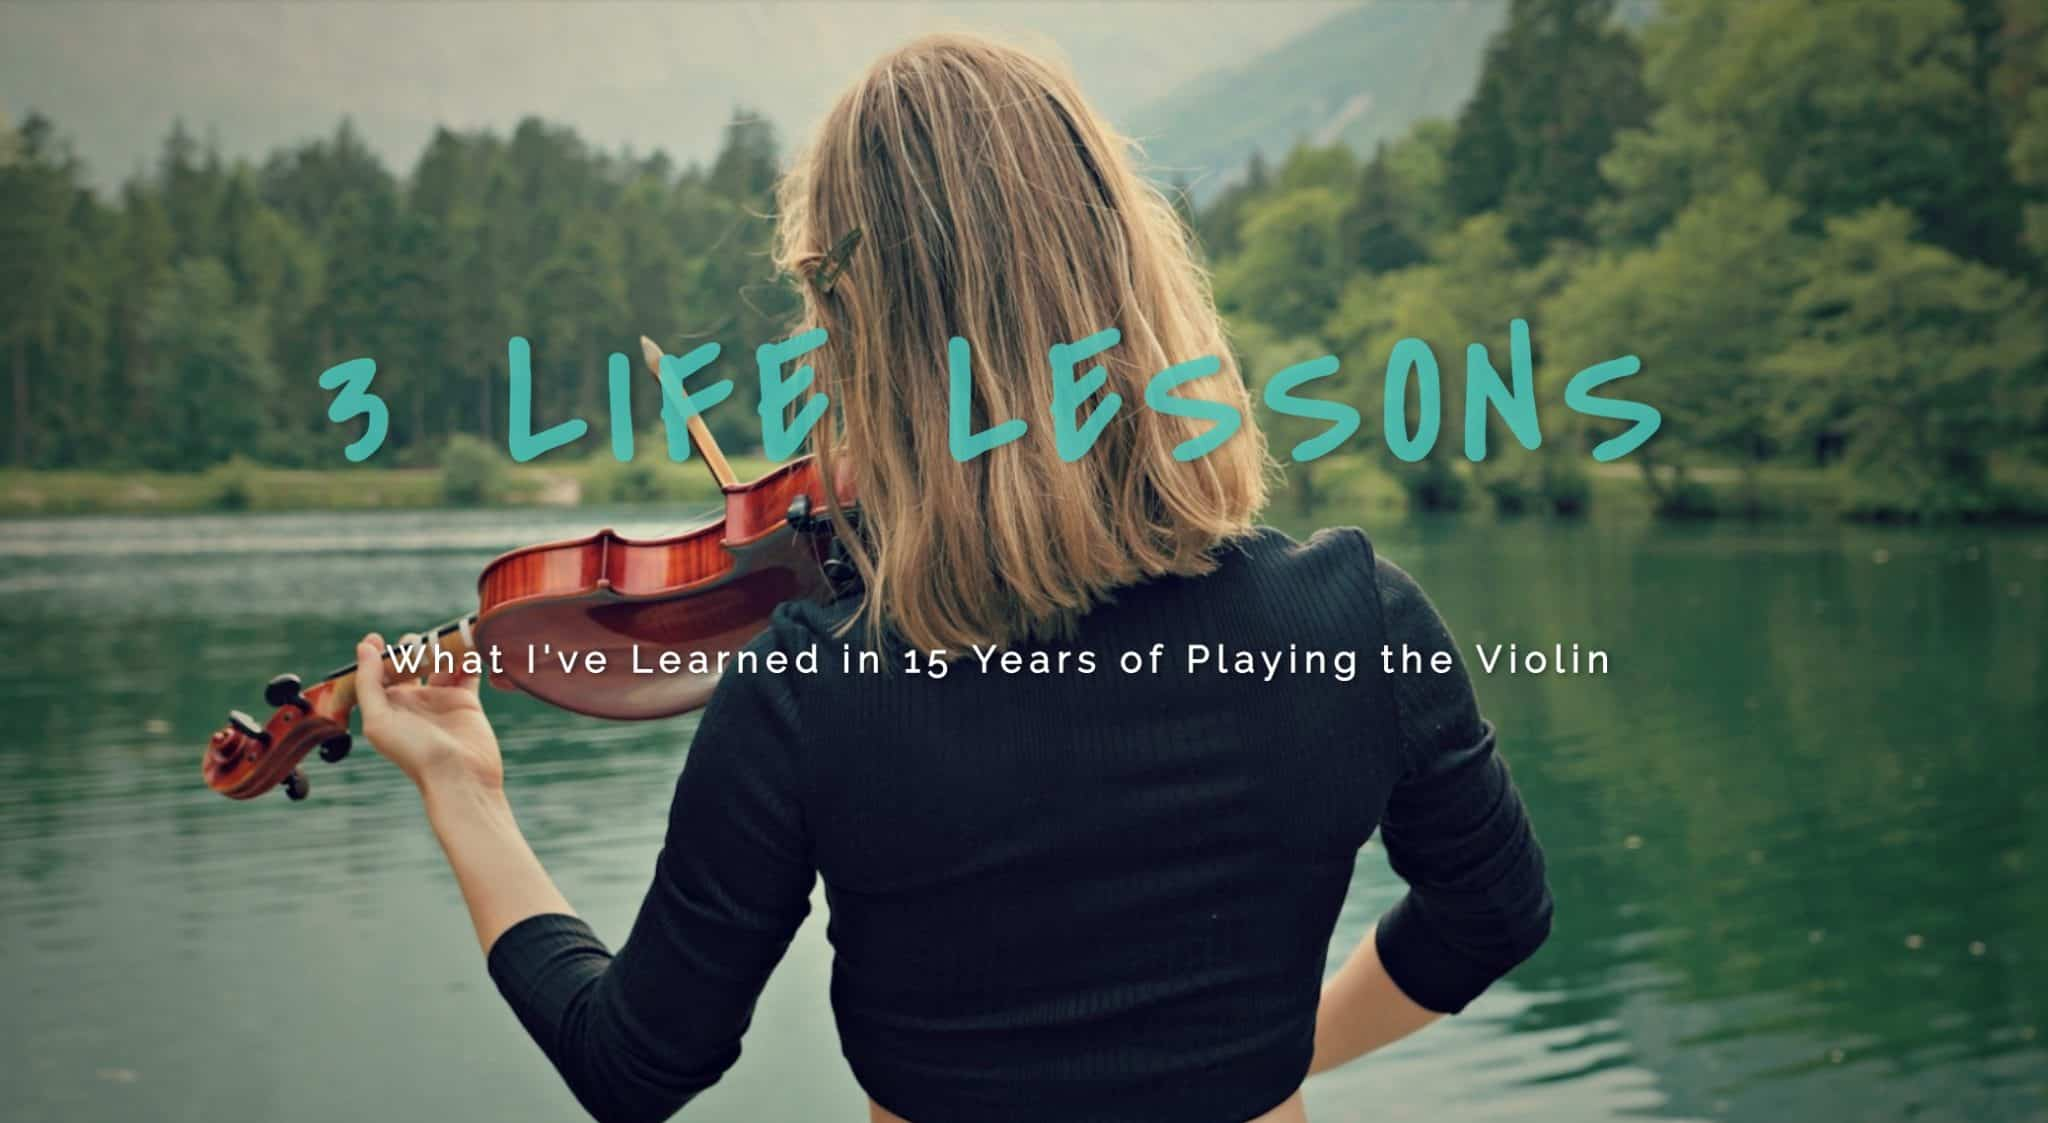 online violin lessons story (1)